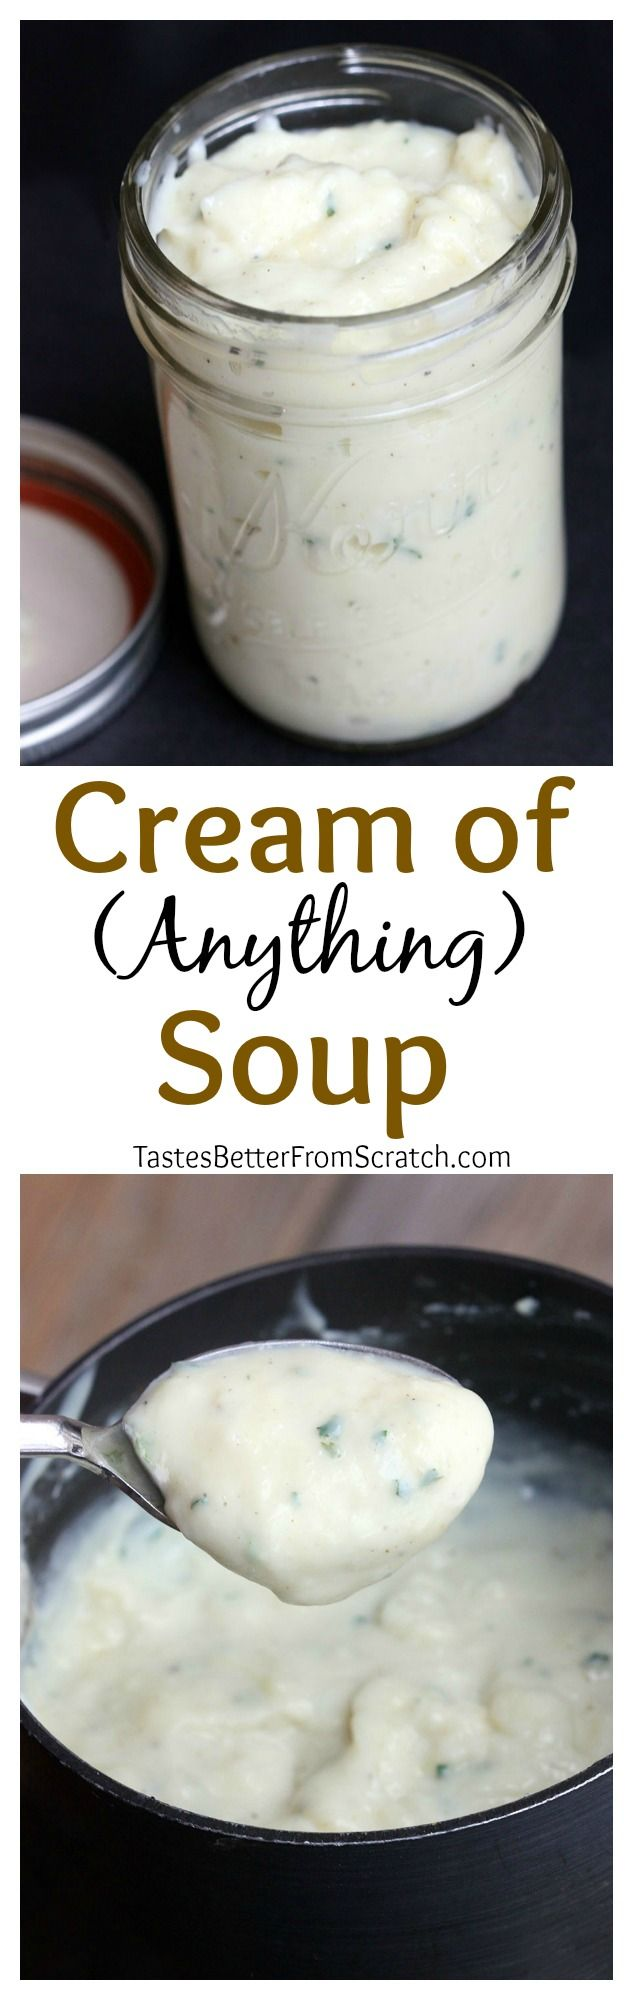 Easy homemade replacement for any Condensed Cream of Soup recipes including Cream of Chicken, Cream of Mushroom, Cream of Celery. Makes the equivalent of one (10.75 oz) can.(Cream Of Soup Recipes)